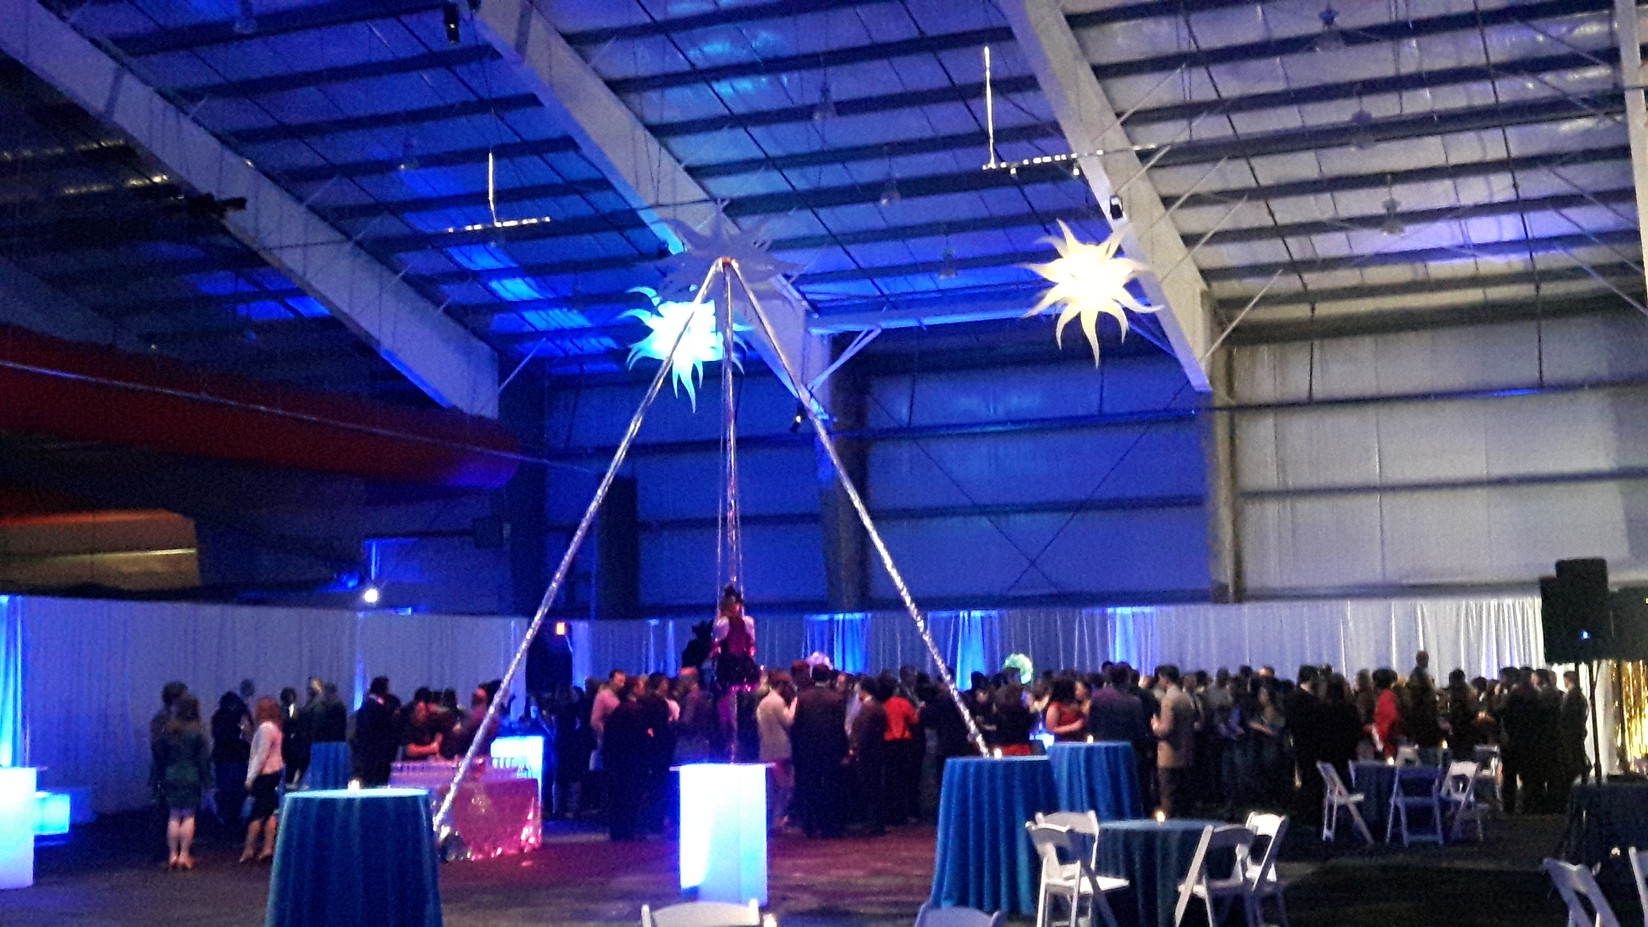 Just-Hanging-Aerial-At-Event.jpg